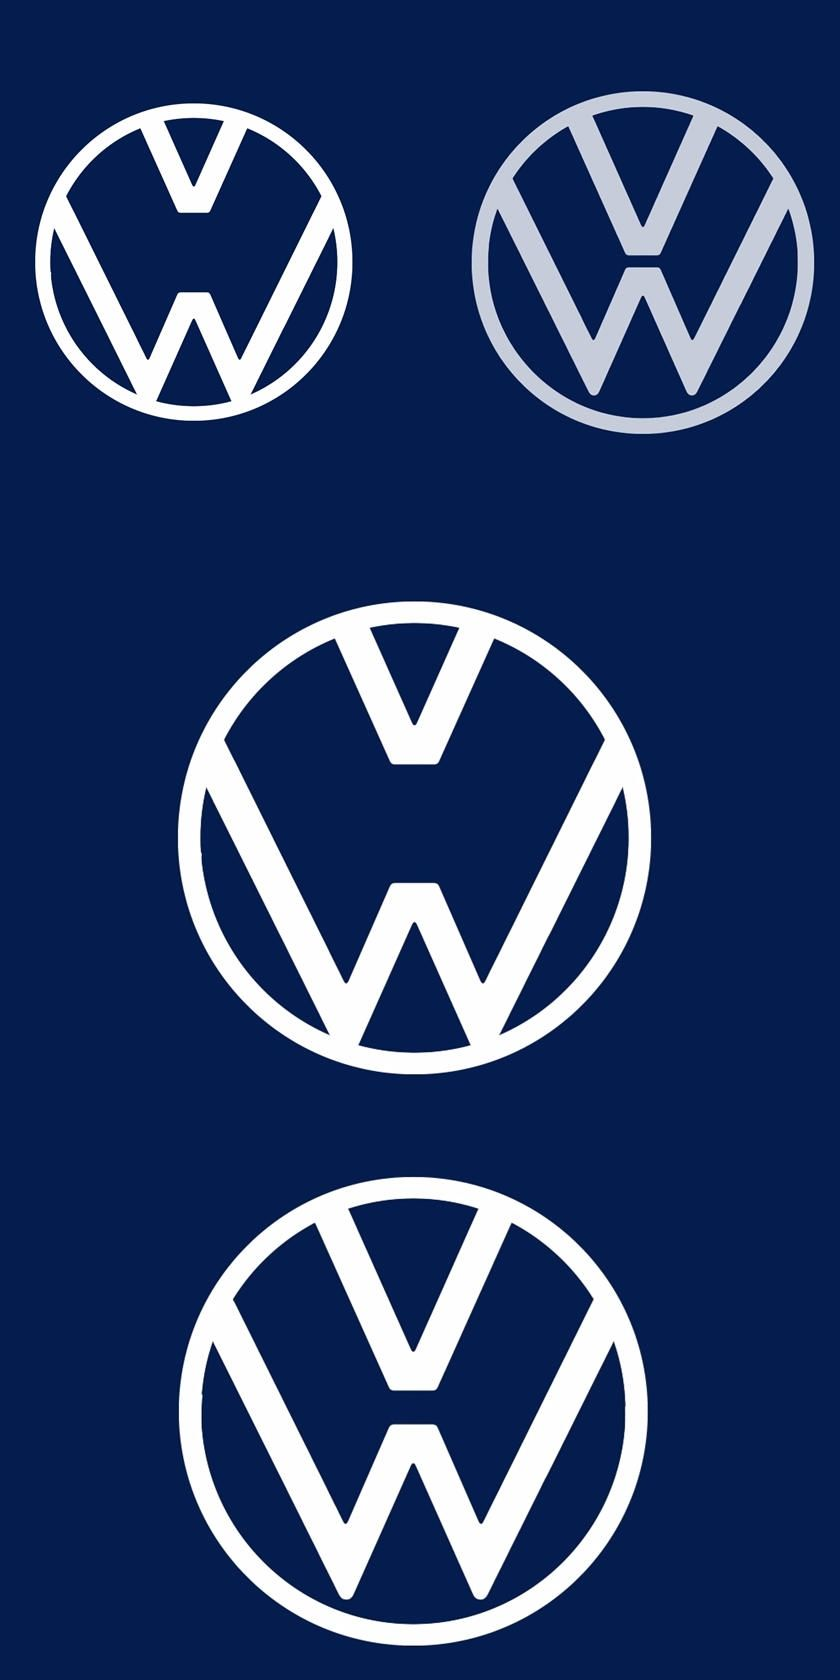 Volkswagen Reminds Us To Keep Our Distance With New Logo The V And The W Get The Message In 2020 Volkswagen Reminder Logos